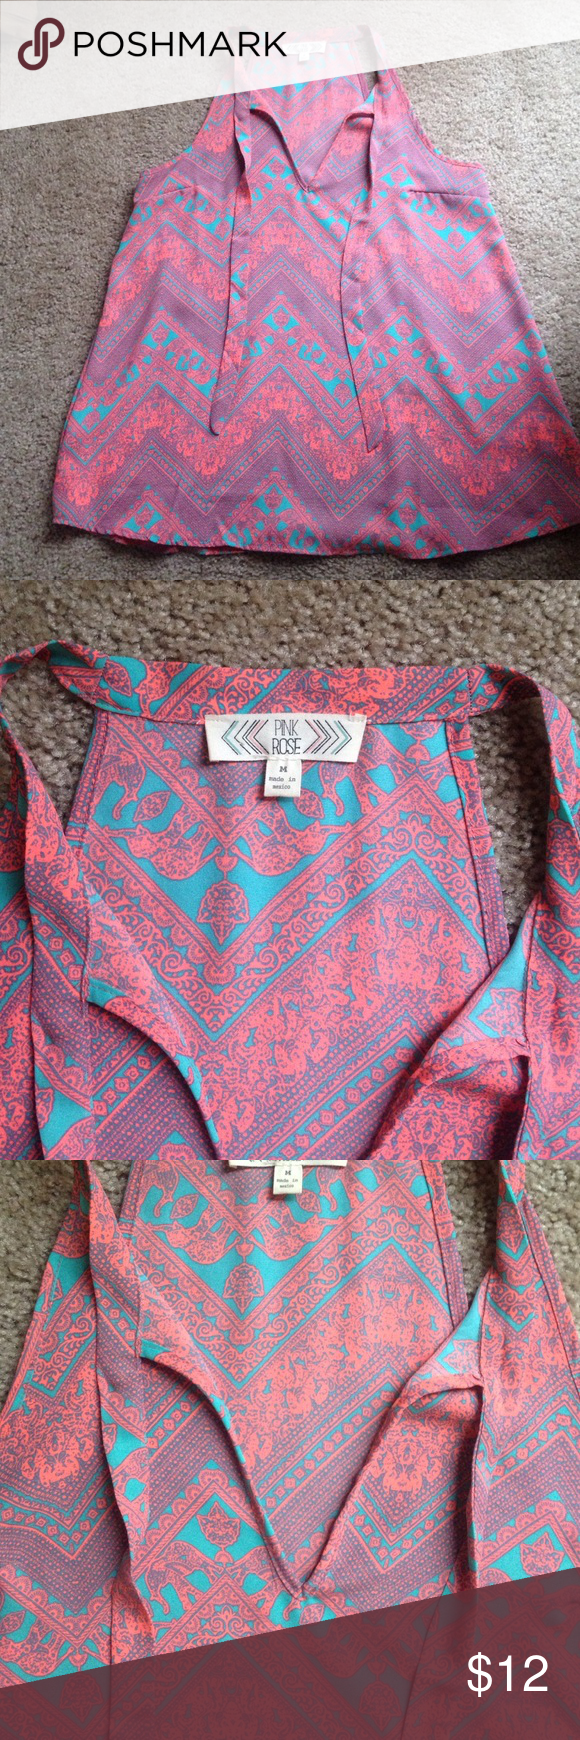 Pink and Teal pattern blouse Oh so cute top for all seasons! Lightweight material, nice and flowy. Worn only twice. Pink Rose Tops Tank Tops